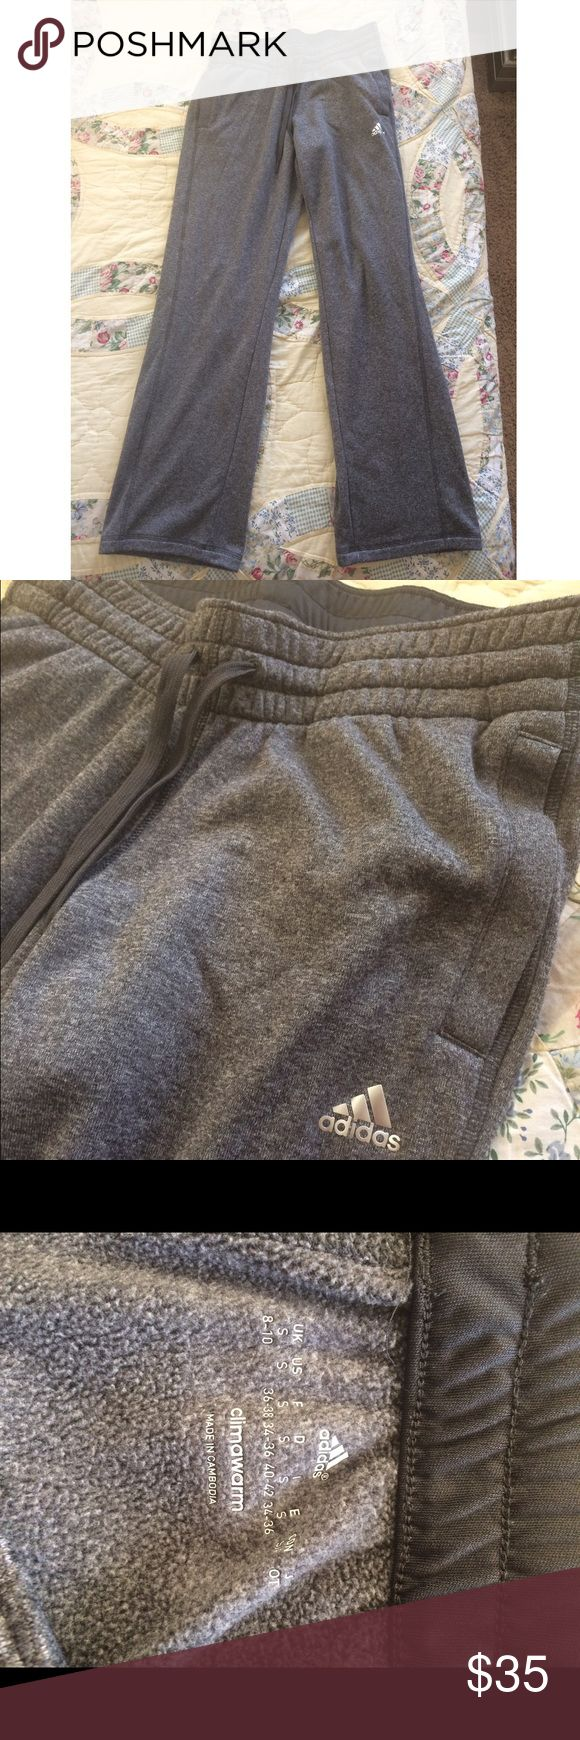 Adidas Climawarm sweatpants in dark grey Grey loose fitting sweatpants. They are for women and have two front pockets and a drawstring. Super soft and comfortable, worn twice but they are just too small for me:) Adidas Pants Track Pants & Joggers